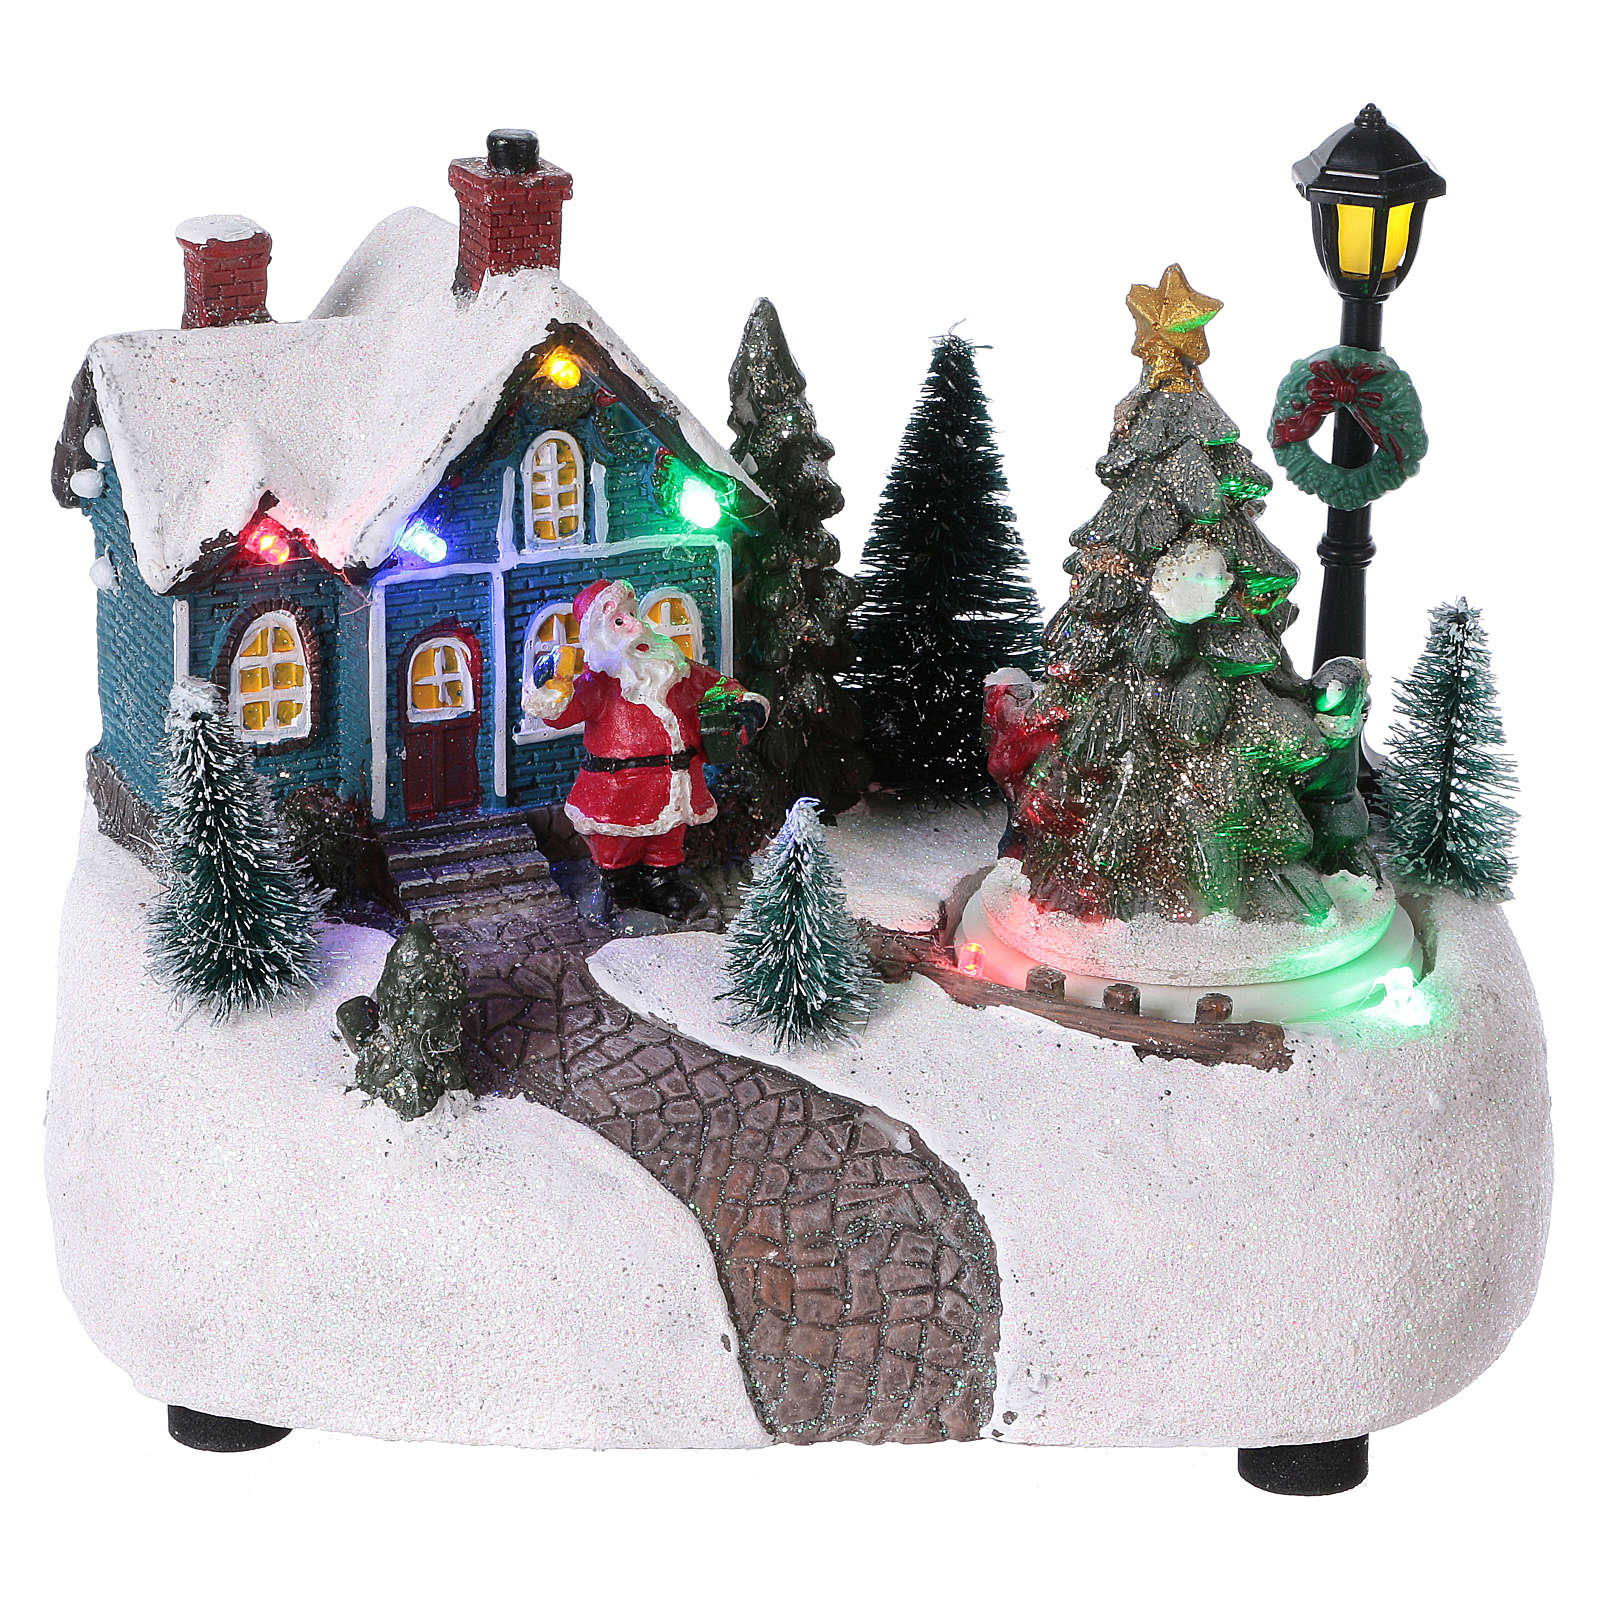 Christmas Town 15x20x10 cm with moving tree battery operated 3